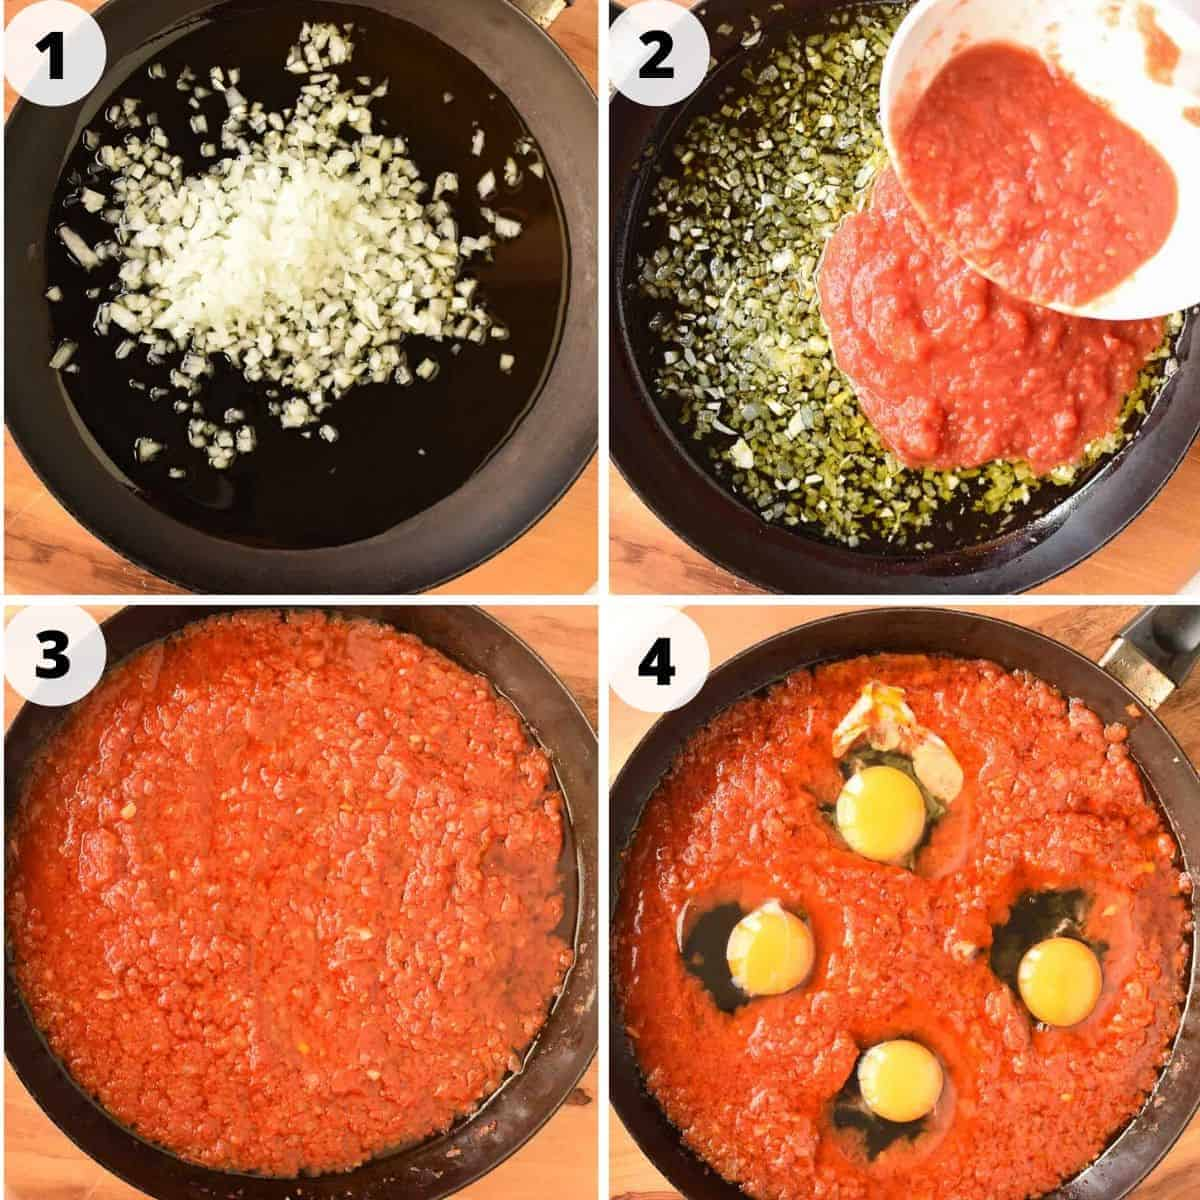 Four images: image 1 - chopped onions in a black pan; image 2 - crushed tomatoes pouring into black pan; image 3 - crushed tomatoes in black pan; images 4 - four raw eggs in tomato sauce in black pan